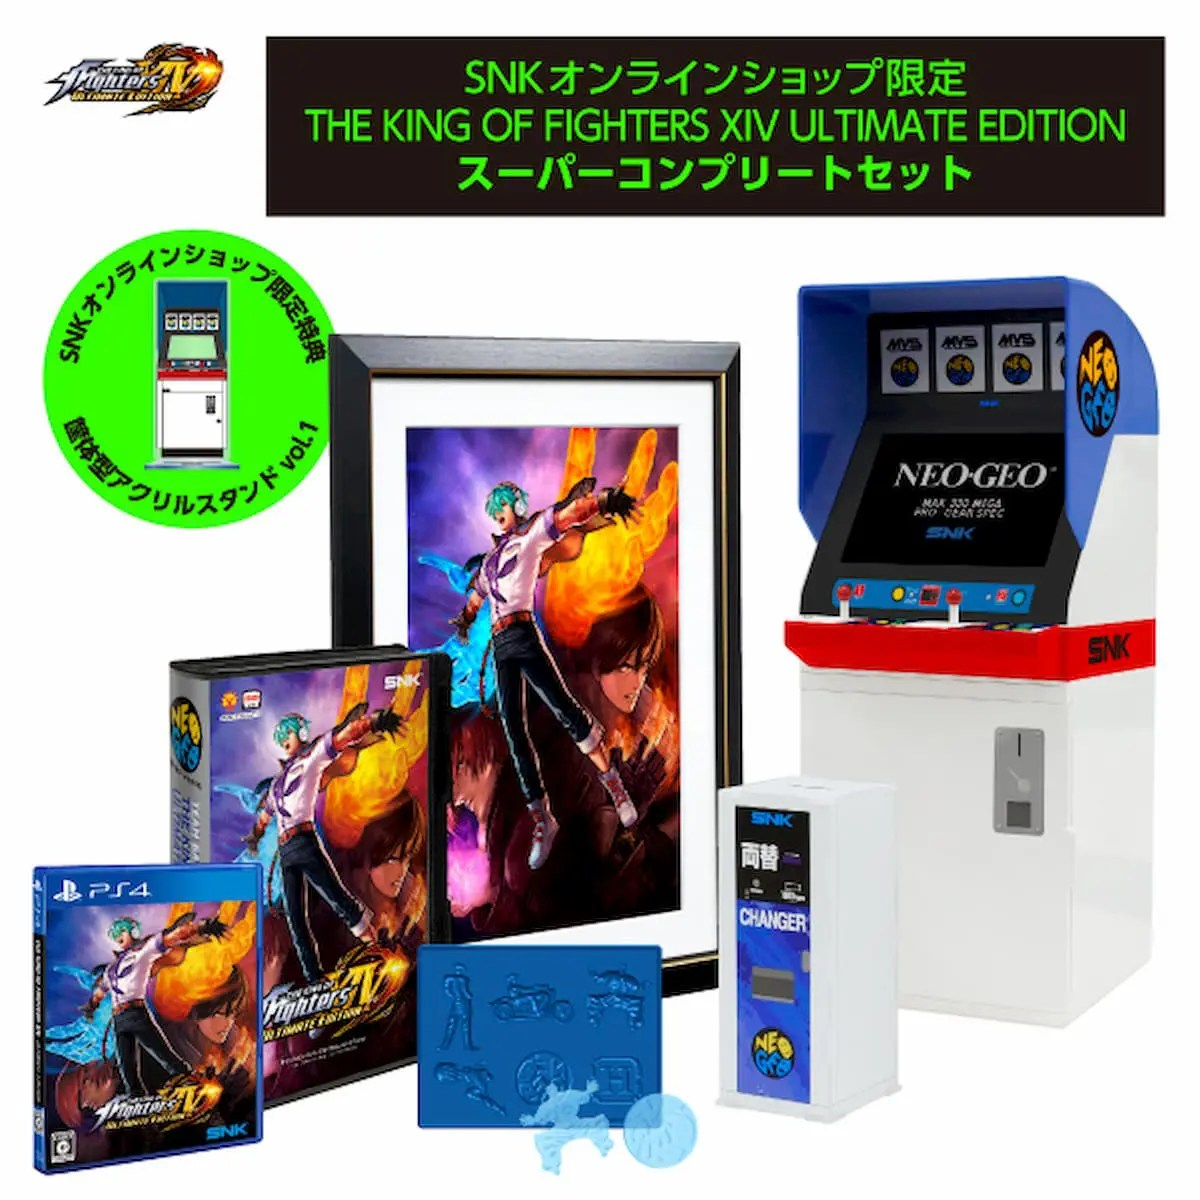 THE KING OF FIGHTERS XIV ULTIMATE EDITION スーパーコンプリートセット - PS4